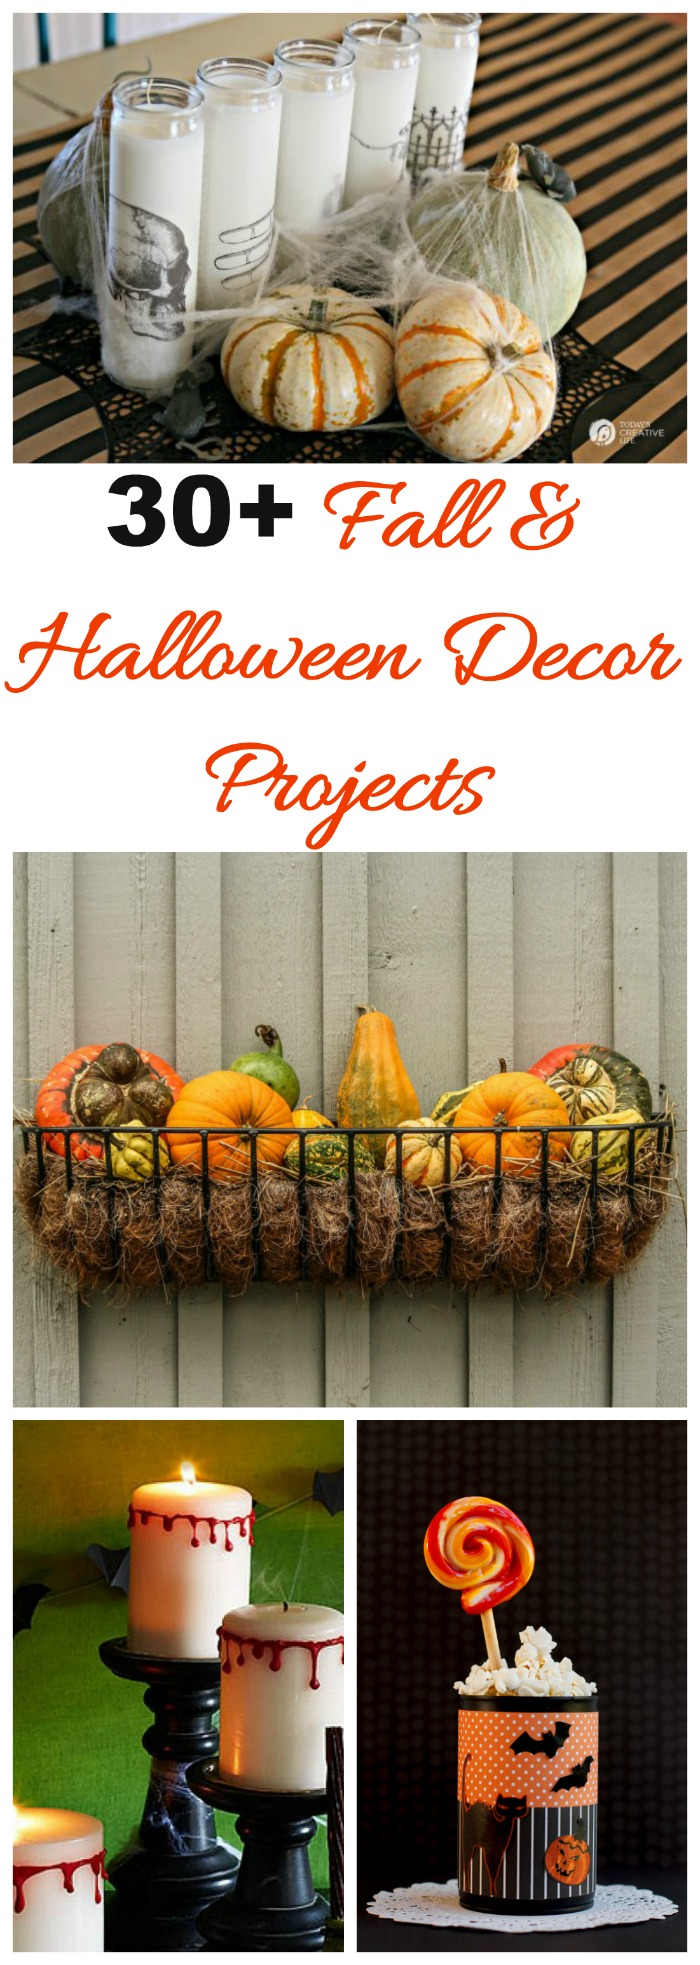 Thees 30+ Halloween Decor projects will transform your home into a spooky and eerie place for the holiday